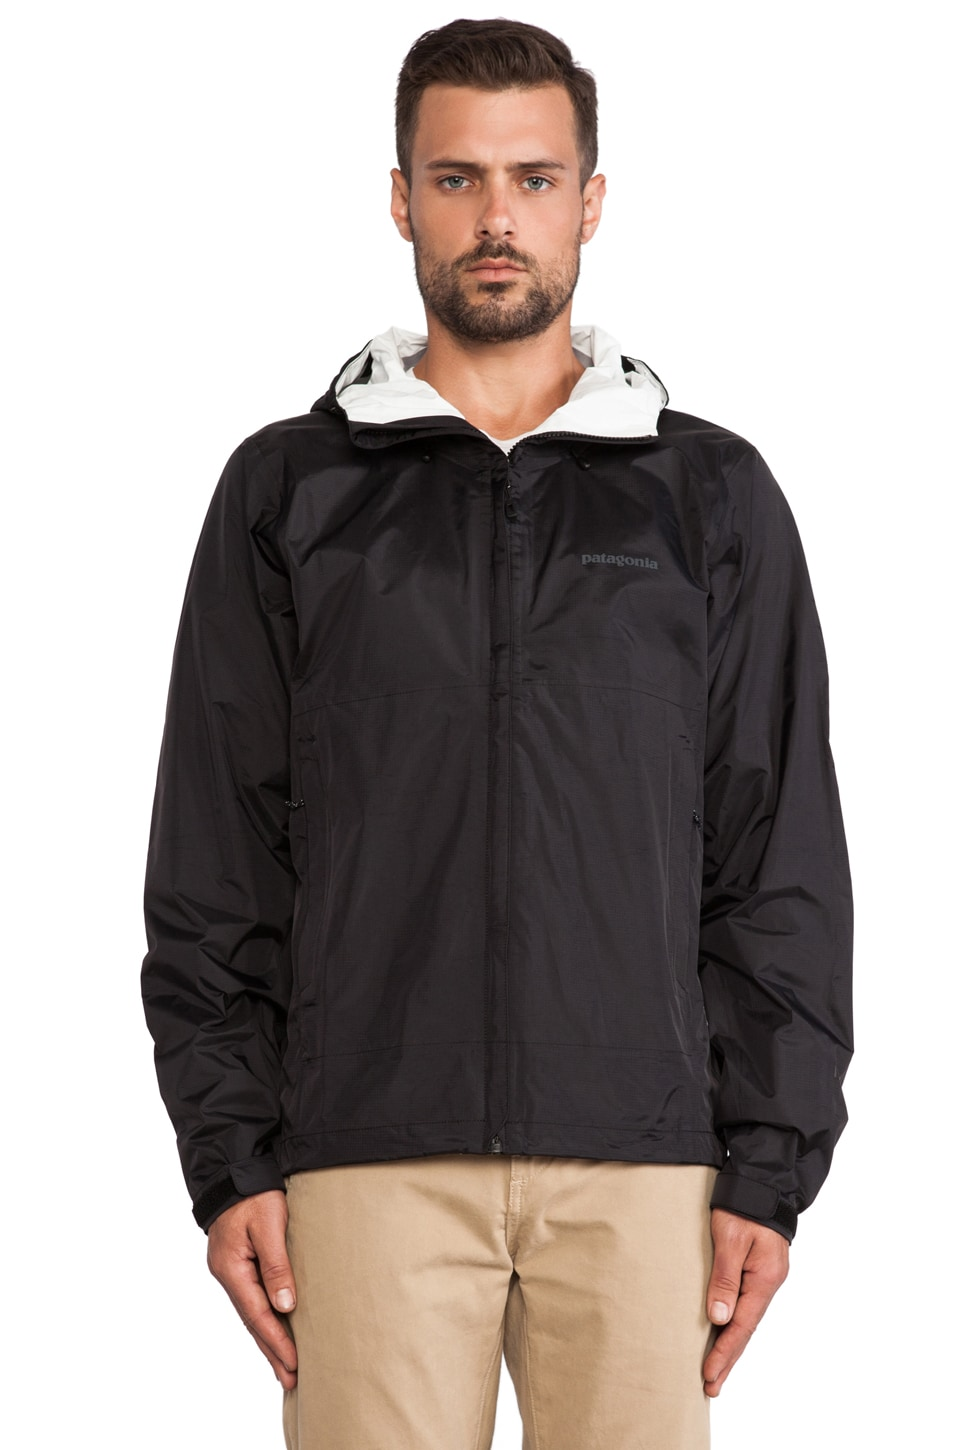 Patagonia Torrentshell Jacket in Black & Forge Grey